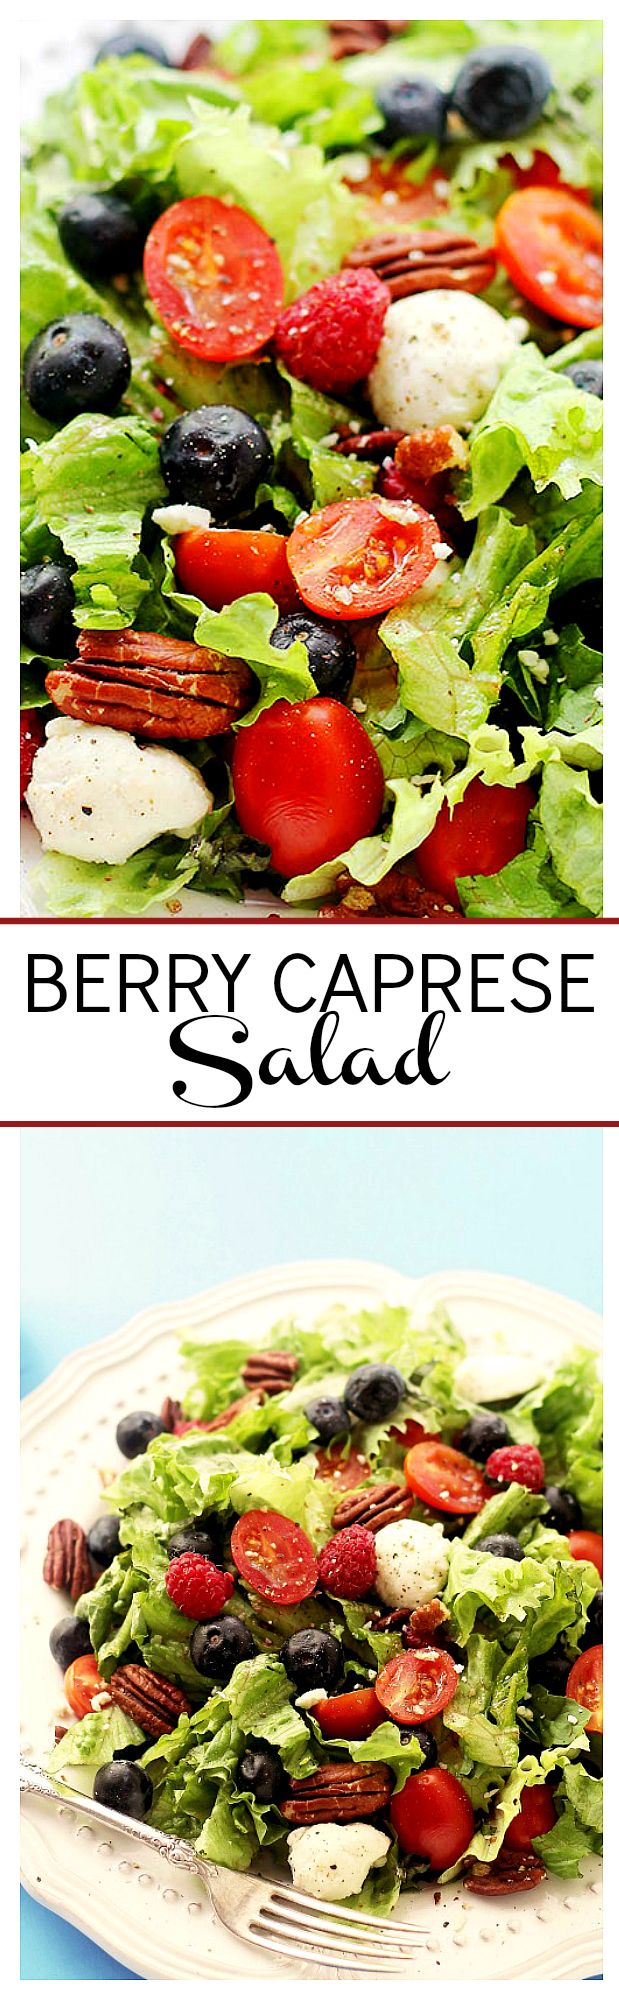 Big Caprese Salad mixed with greens and berries, tossed with a light, homemade balsamic vinaigrette – I could live on this stuff!